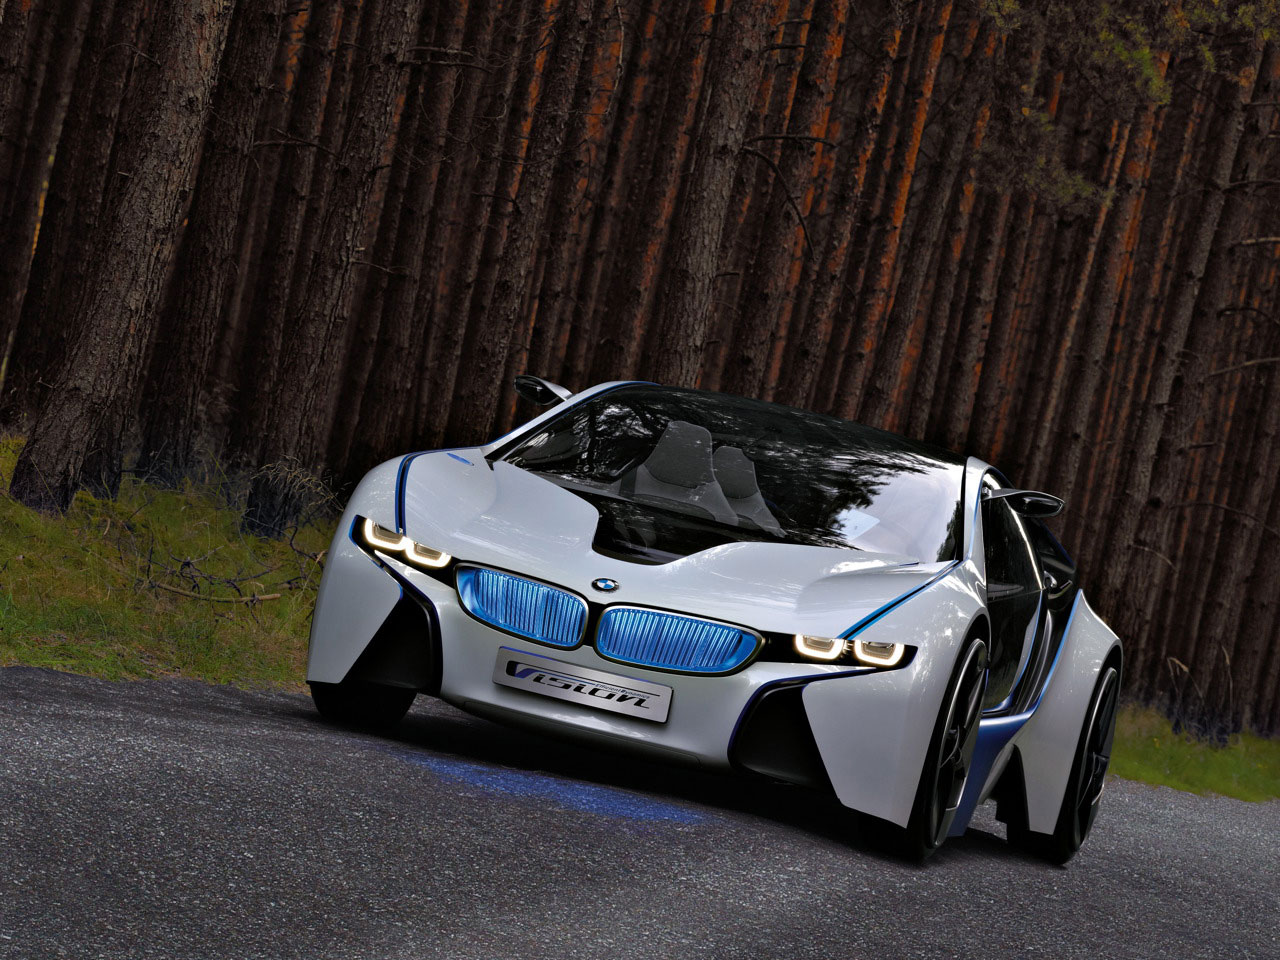 BMW M8 Hybrid Sports Car